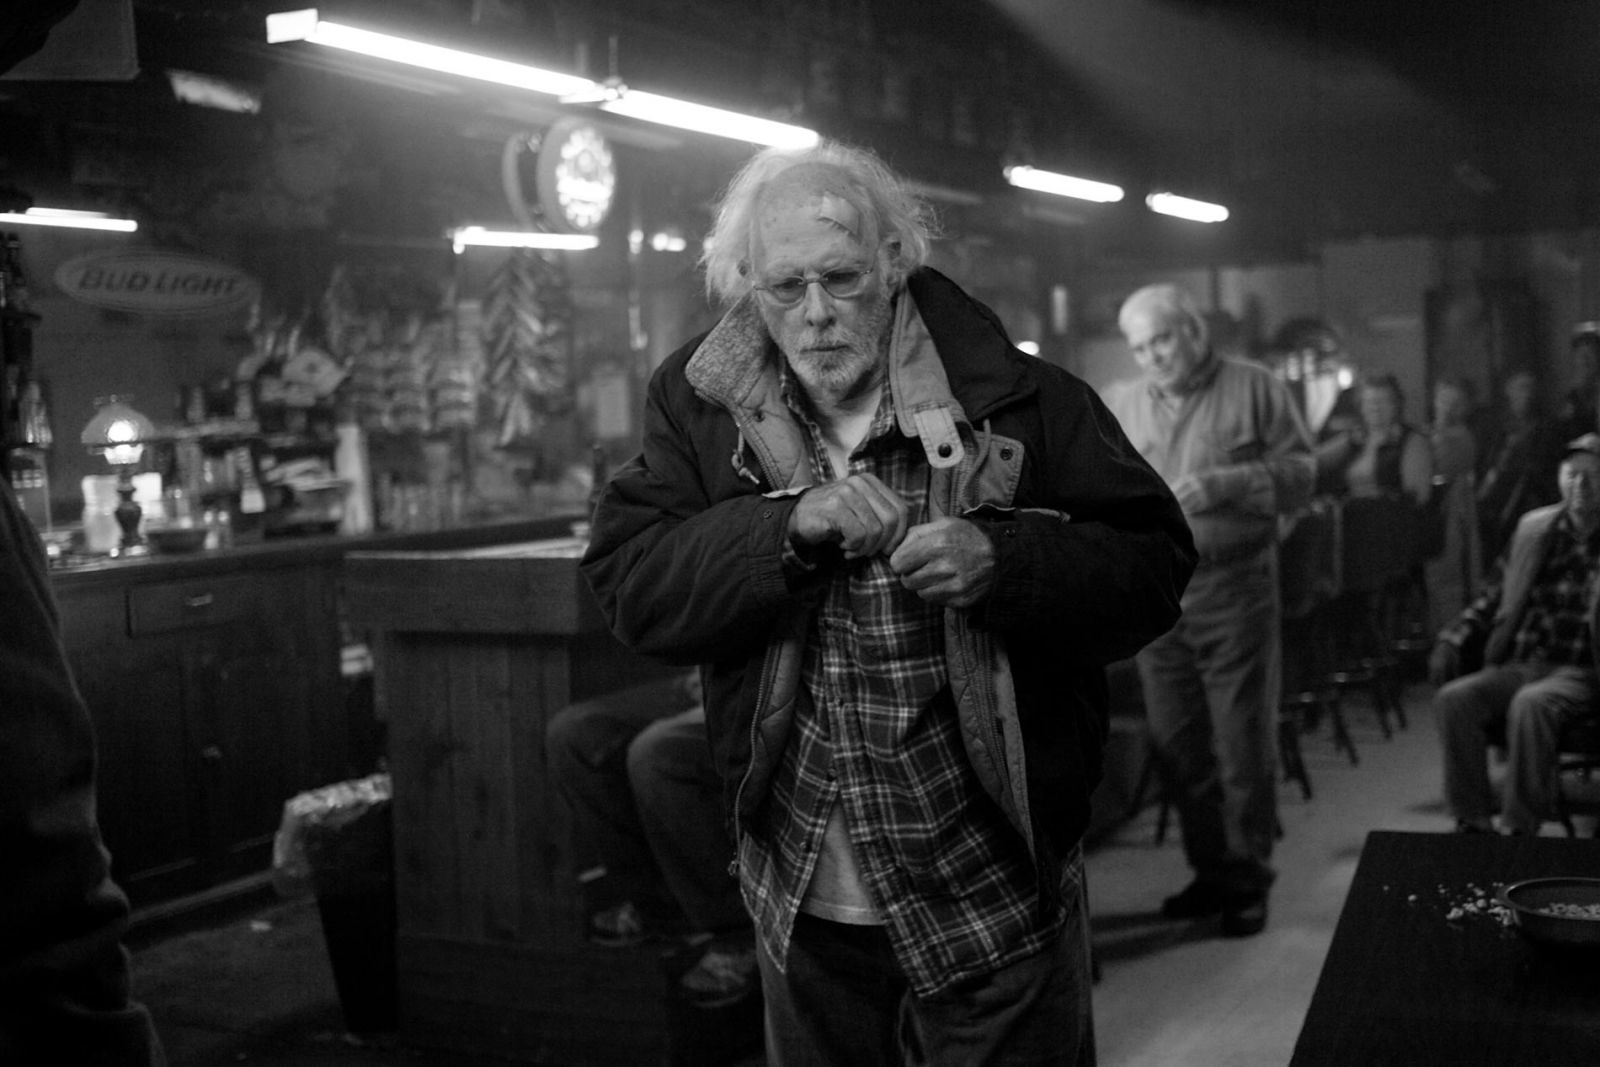 Nebraska (2013), directed by Alexander Payne and starring Bruce Dern and Will Forte.